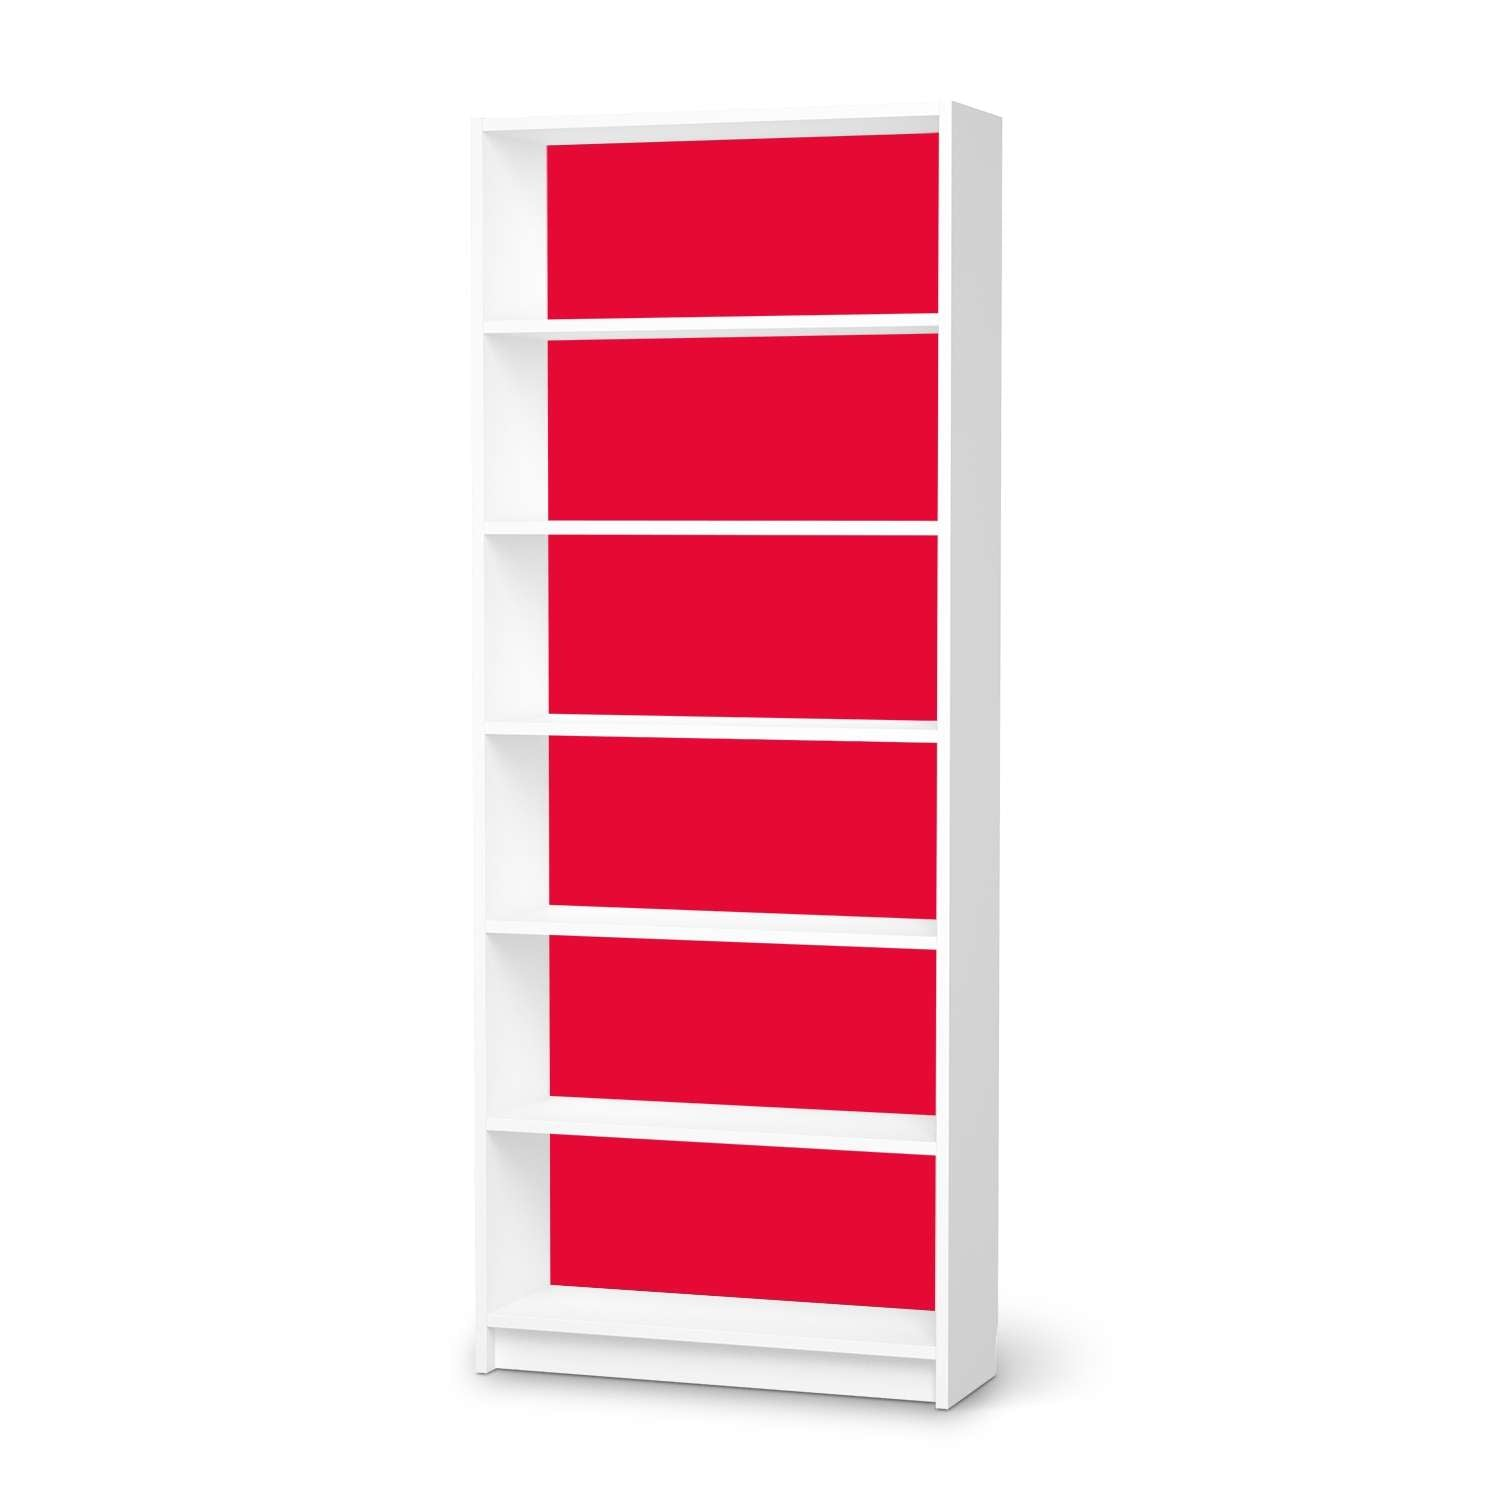 Klebefolie IKEA Billy Regal 6 Fächer - Design: Rot Light von creatisto